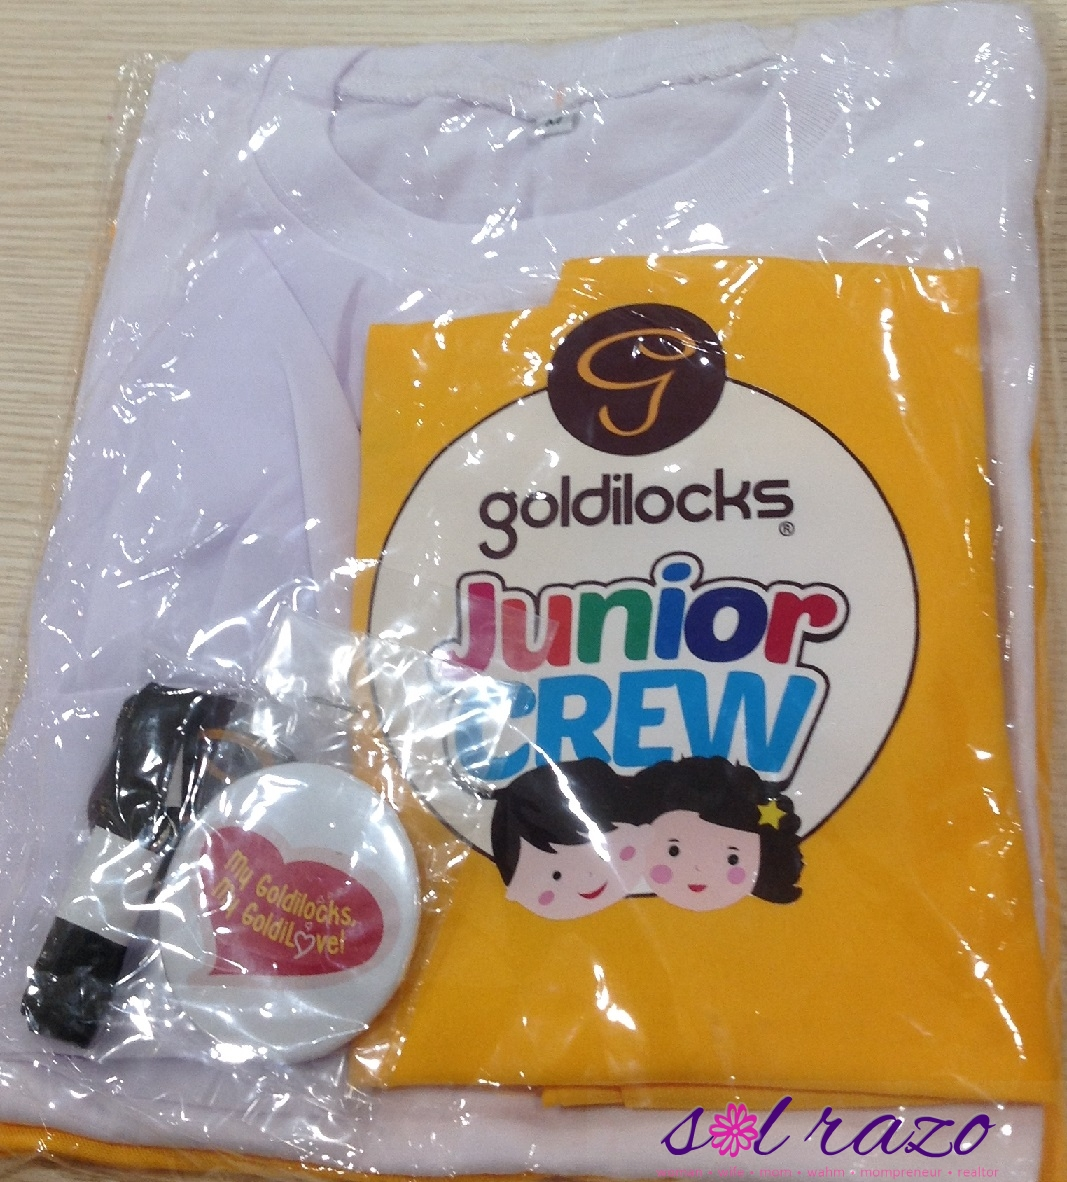 Goldilocks Junior Crew 2015 Kit